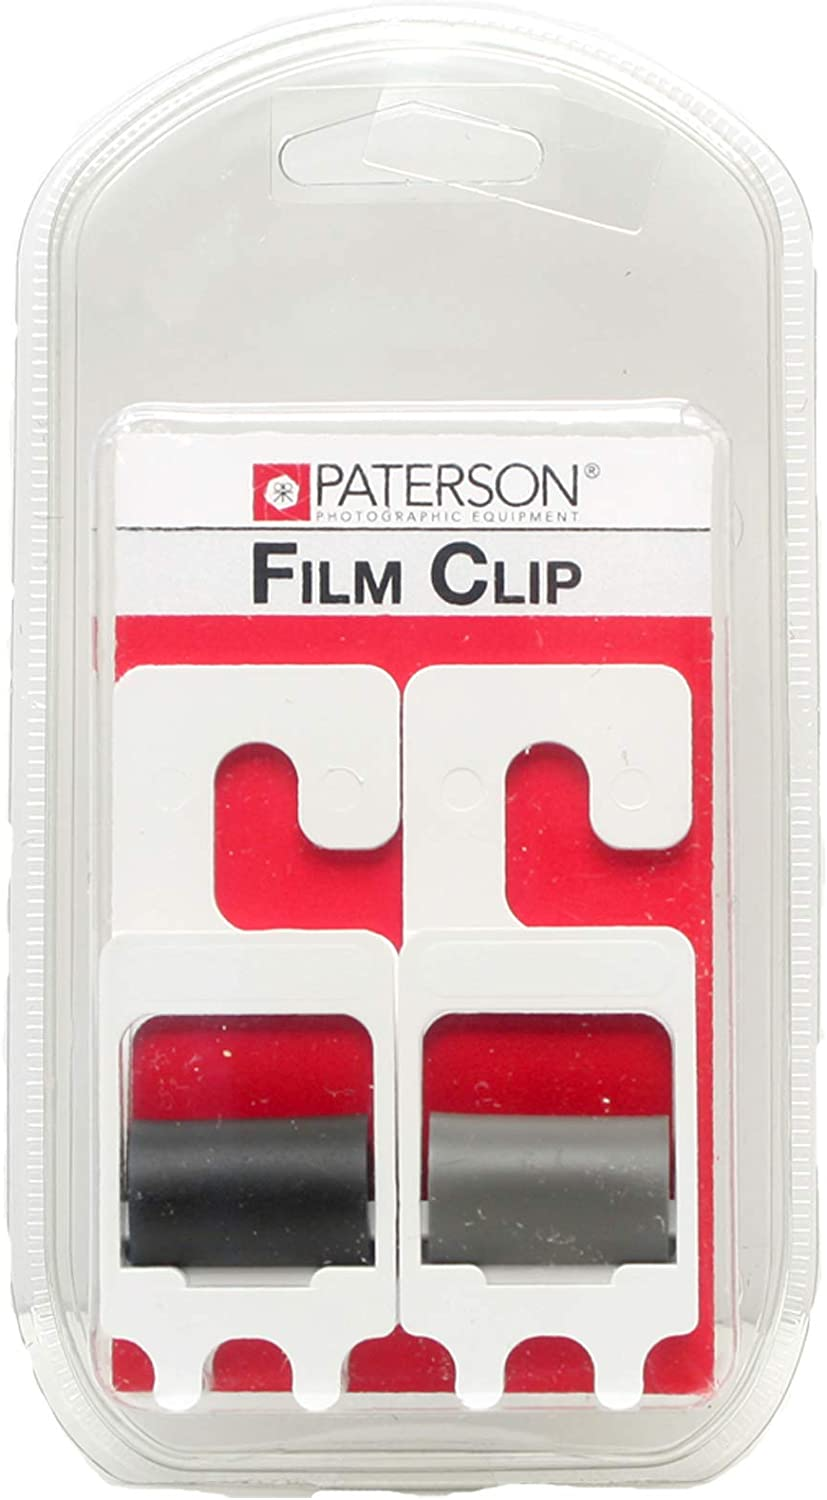 Set of 2 Film Developing Clips Heavy Duty Stainless Steel